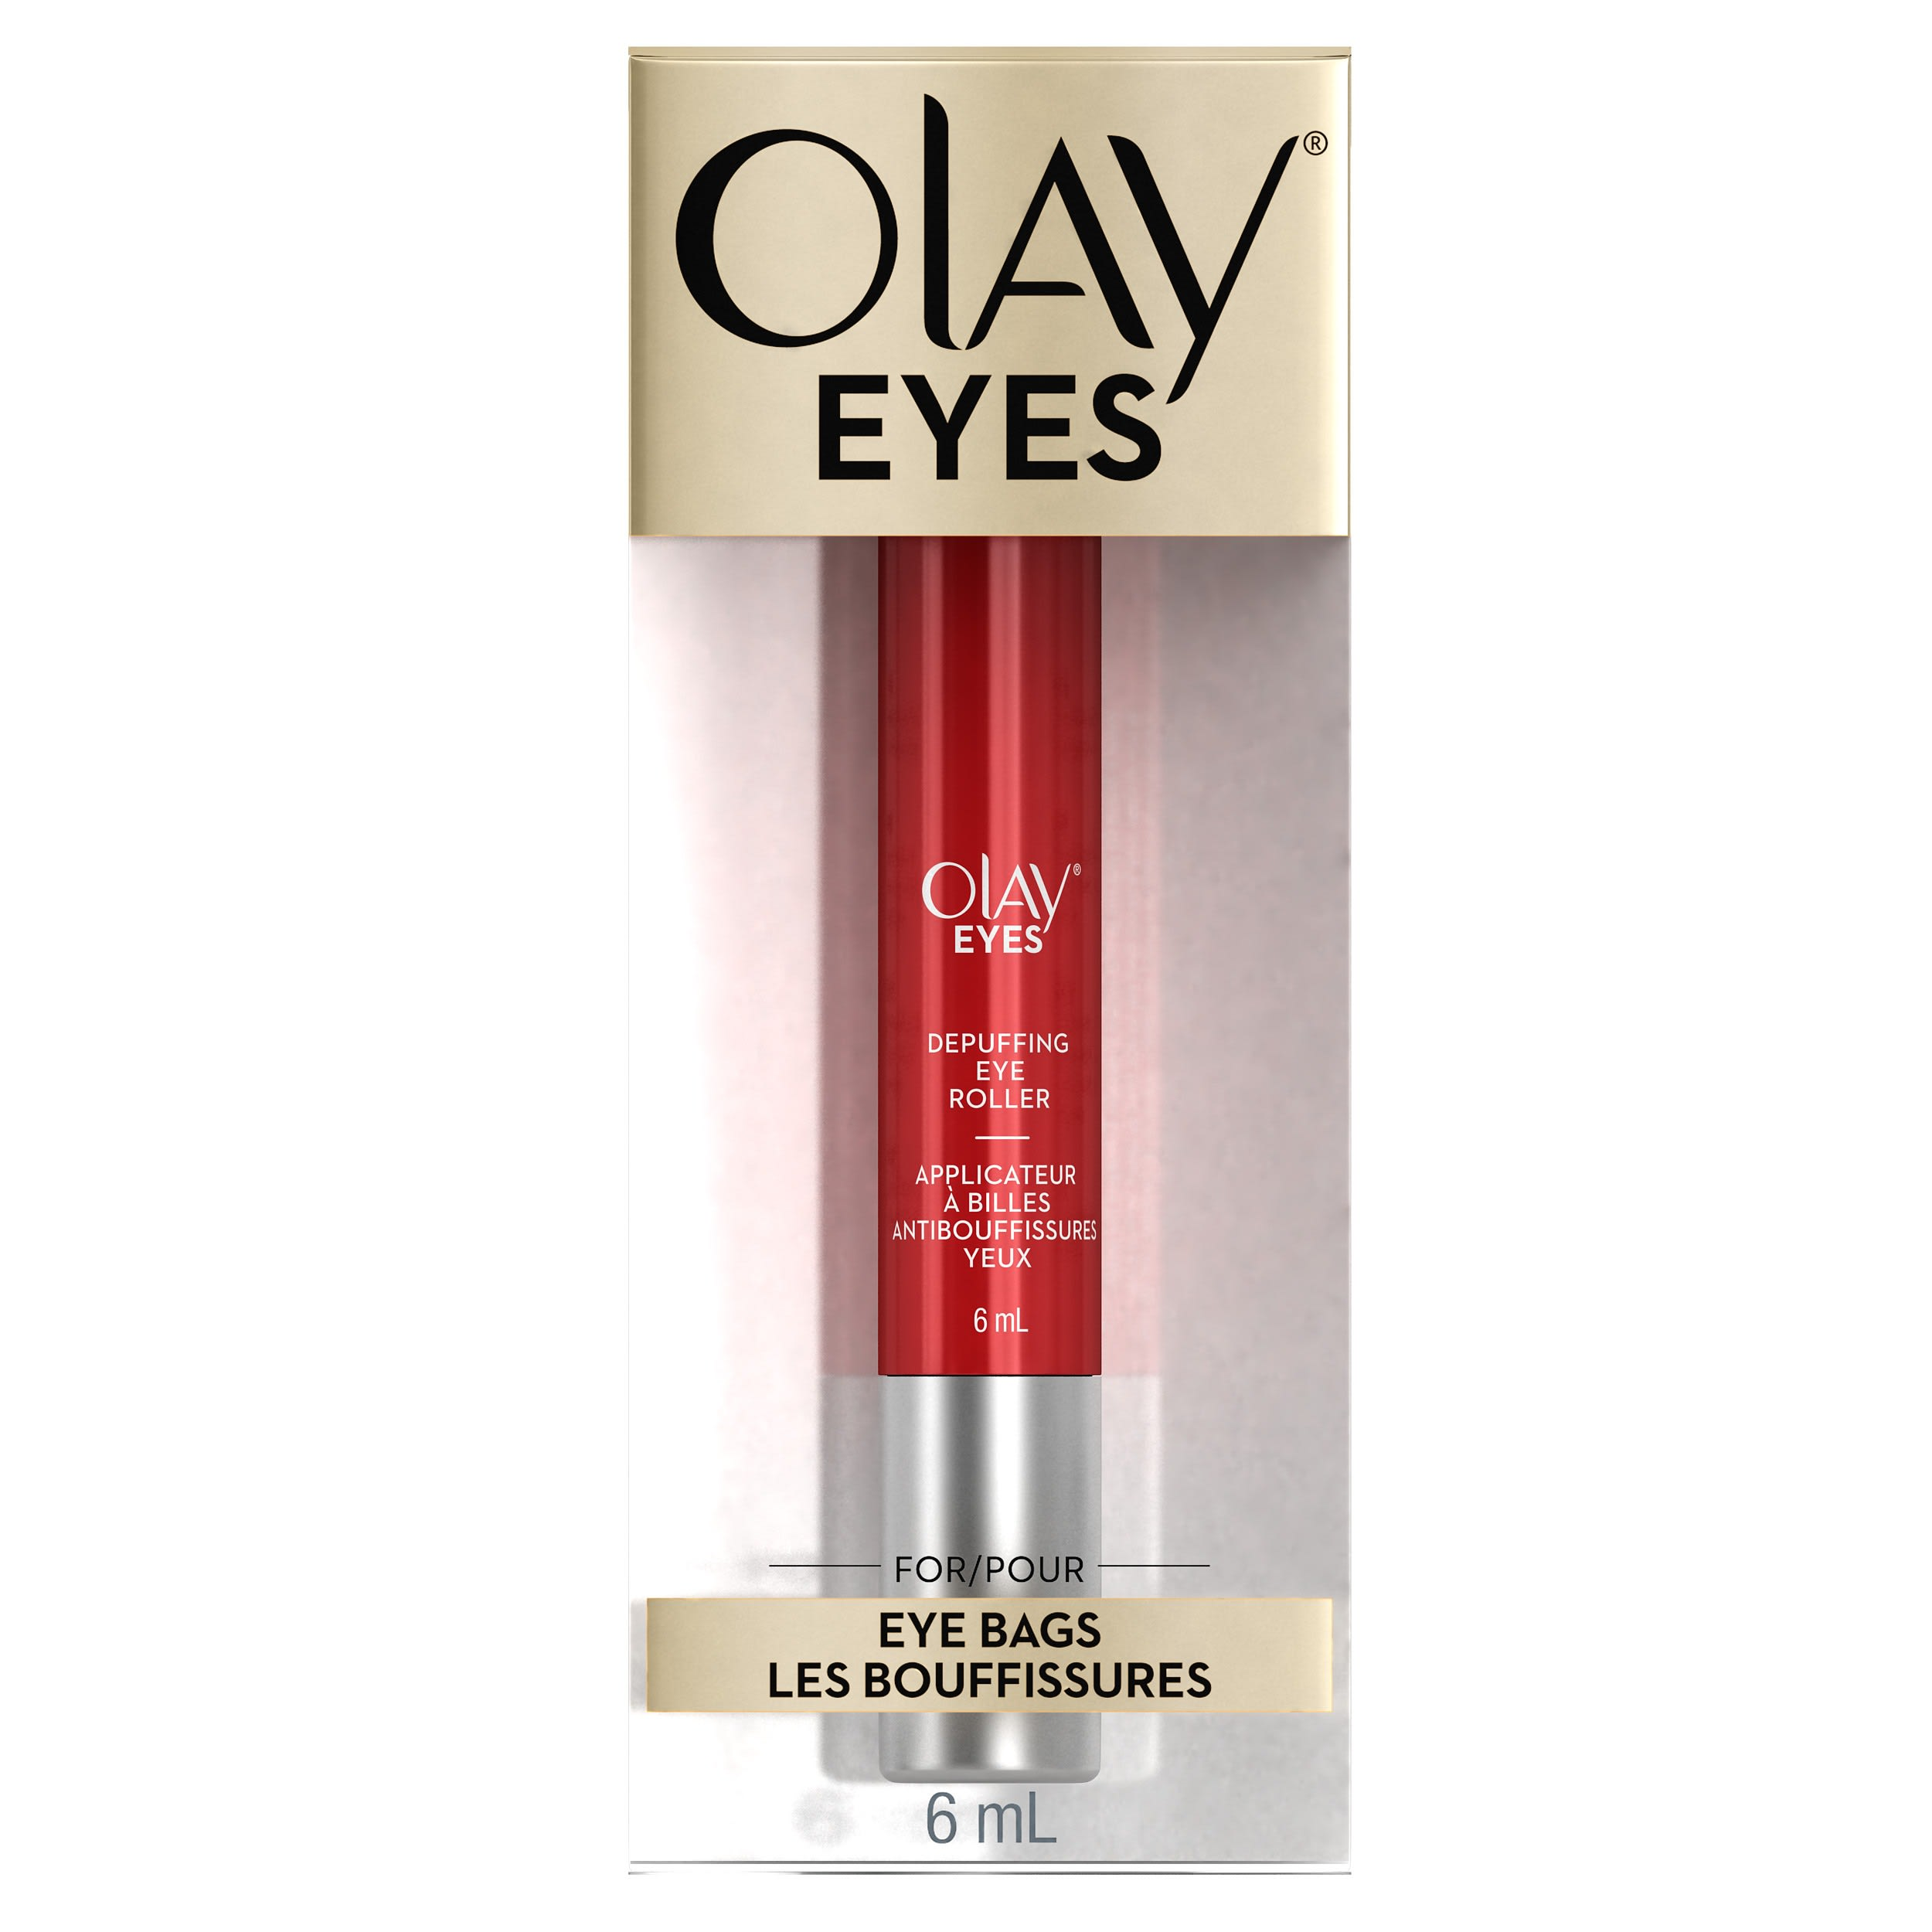 olay_eye_depuffing_eye_roller-1